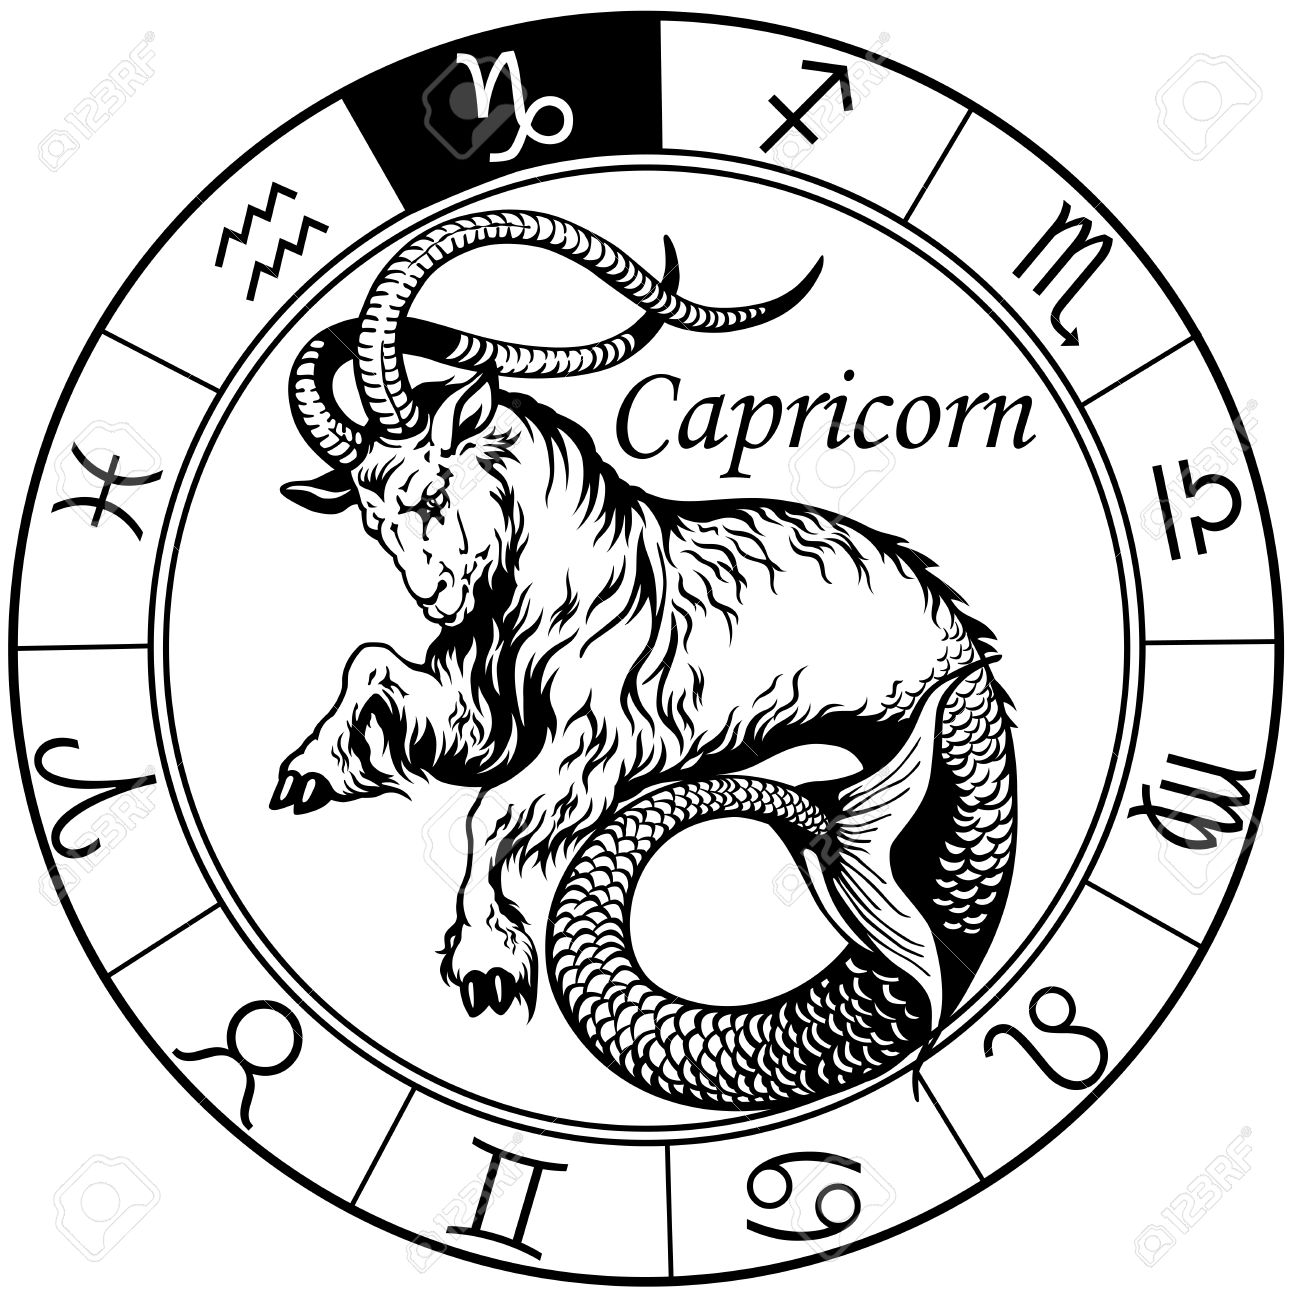 Capricorn Stock Photos Royalty Free Capricorn Images